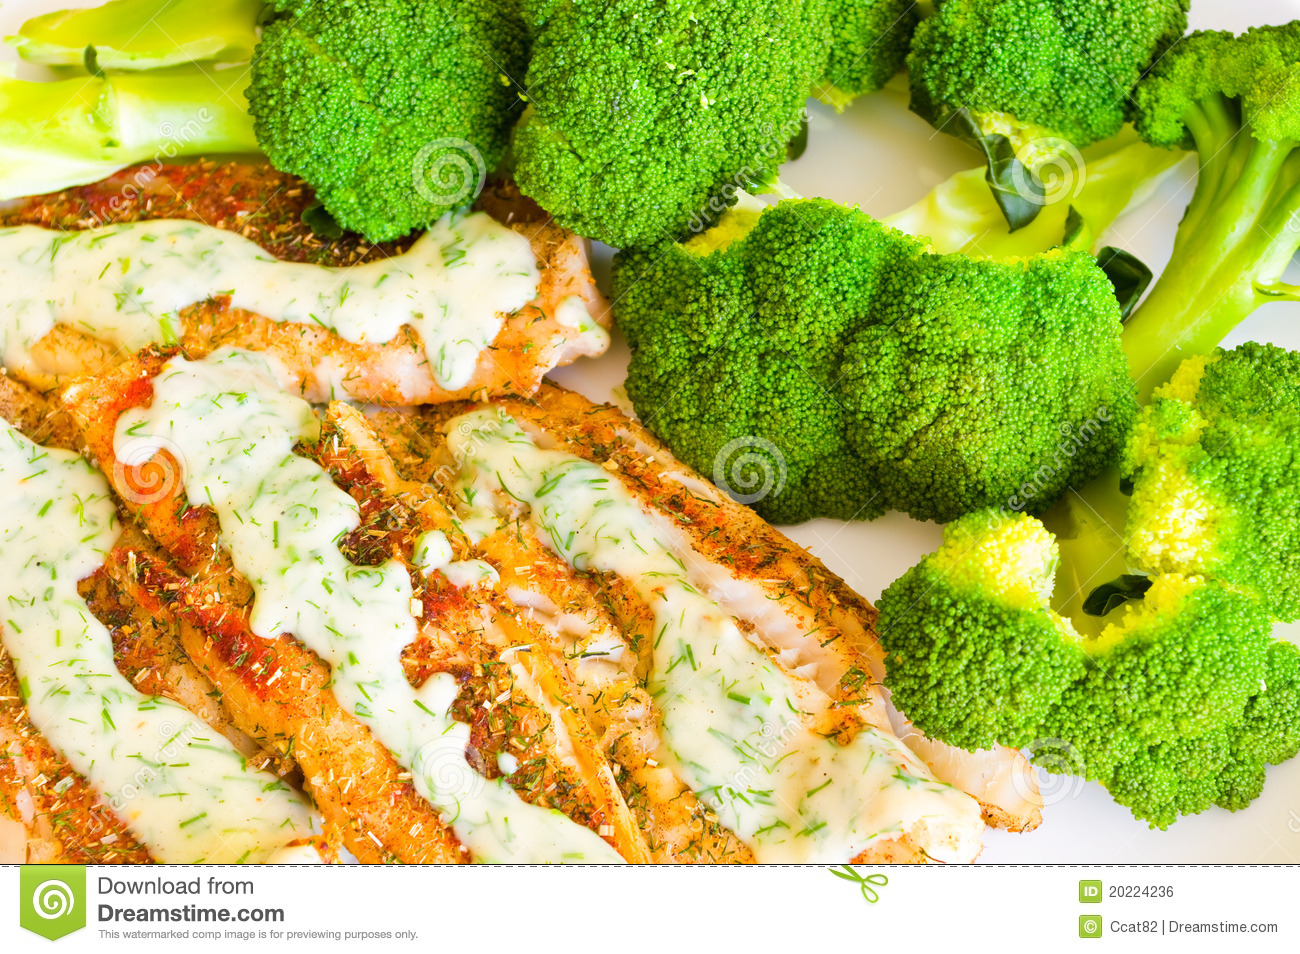 Fish with broccoli royalty free stock image image 20224236 for Fish and broccoli diet